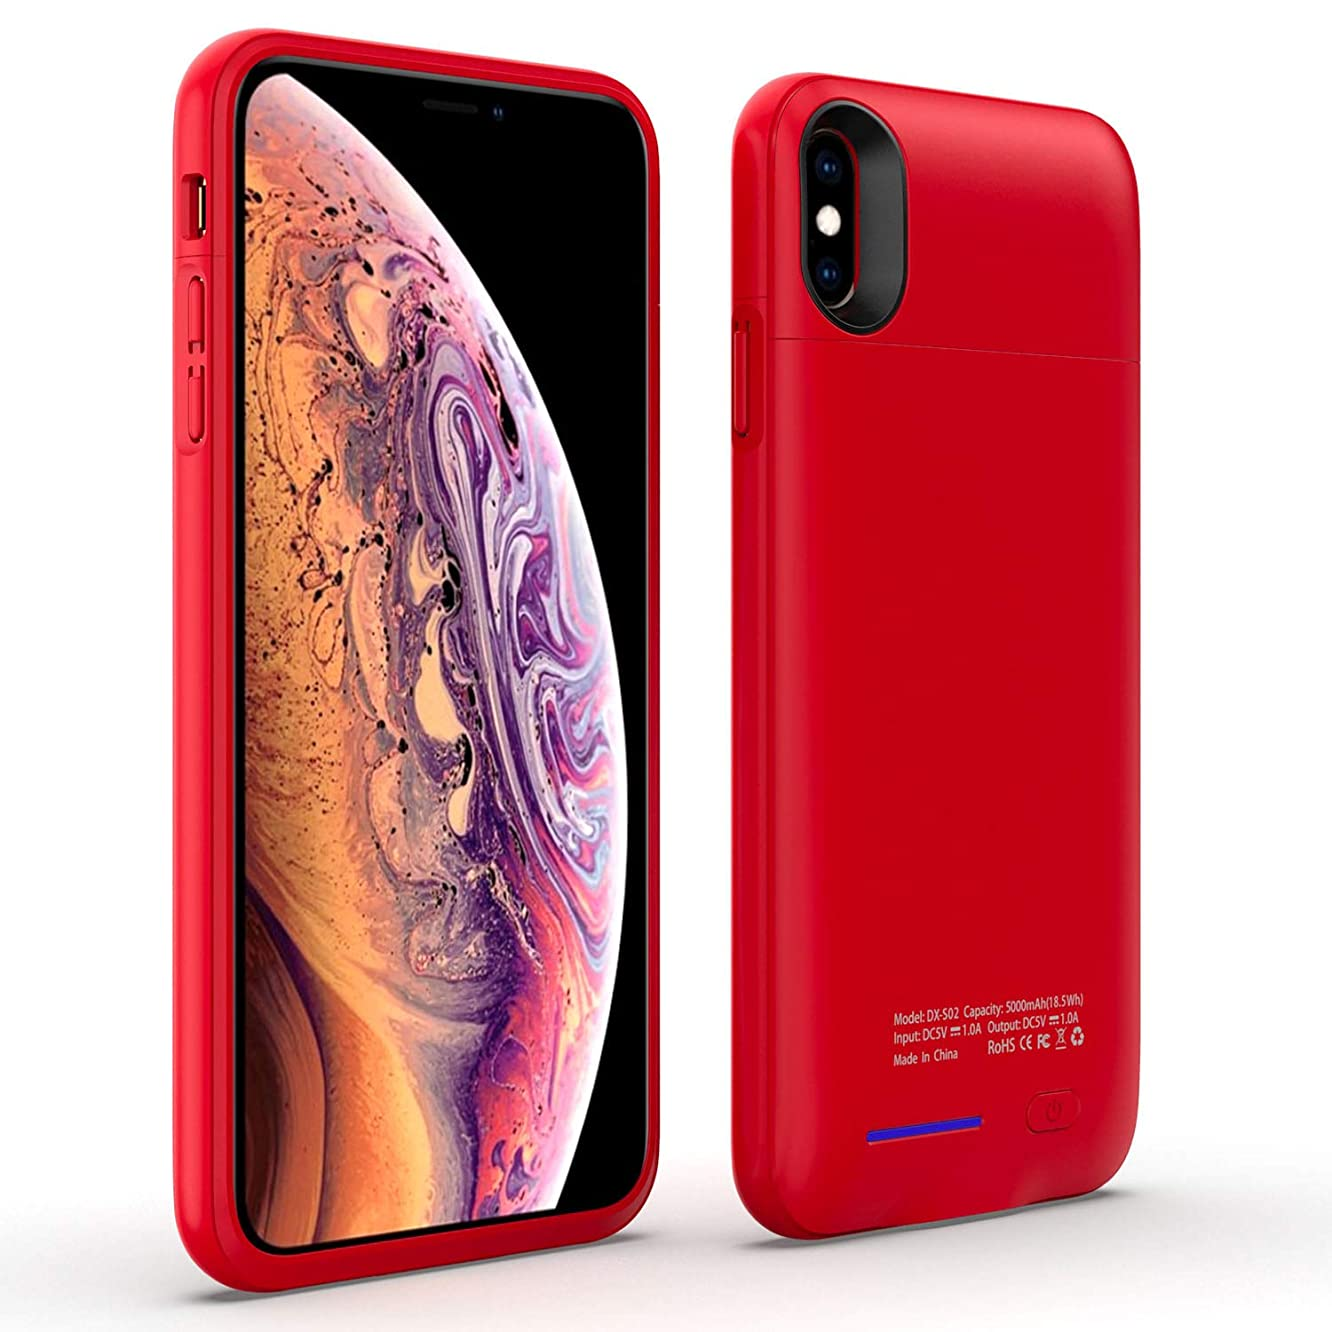 Gorilla Gadgets 5000Mah Battery Charger Case Compatible with iPhone Xs Max, Rechargeable Backup Battery Power Bank Charger Case, Magnet Bracket - Red